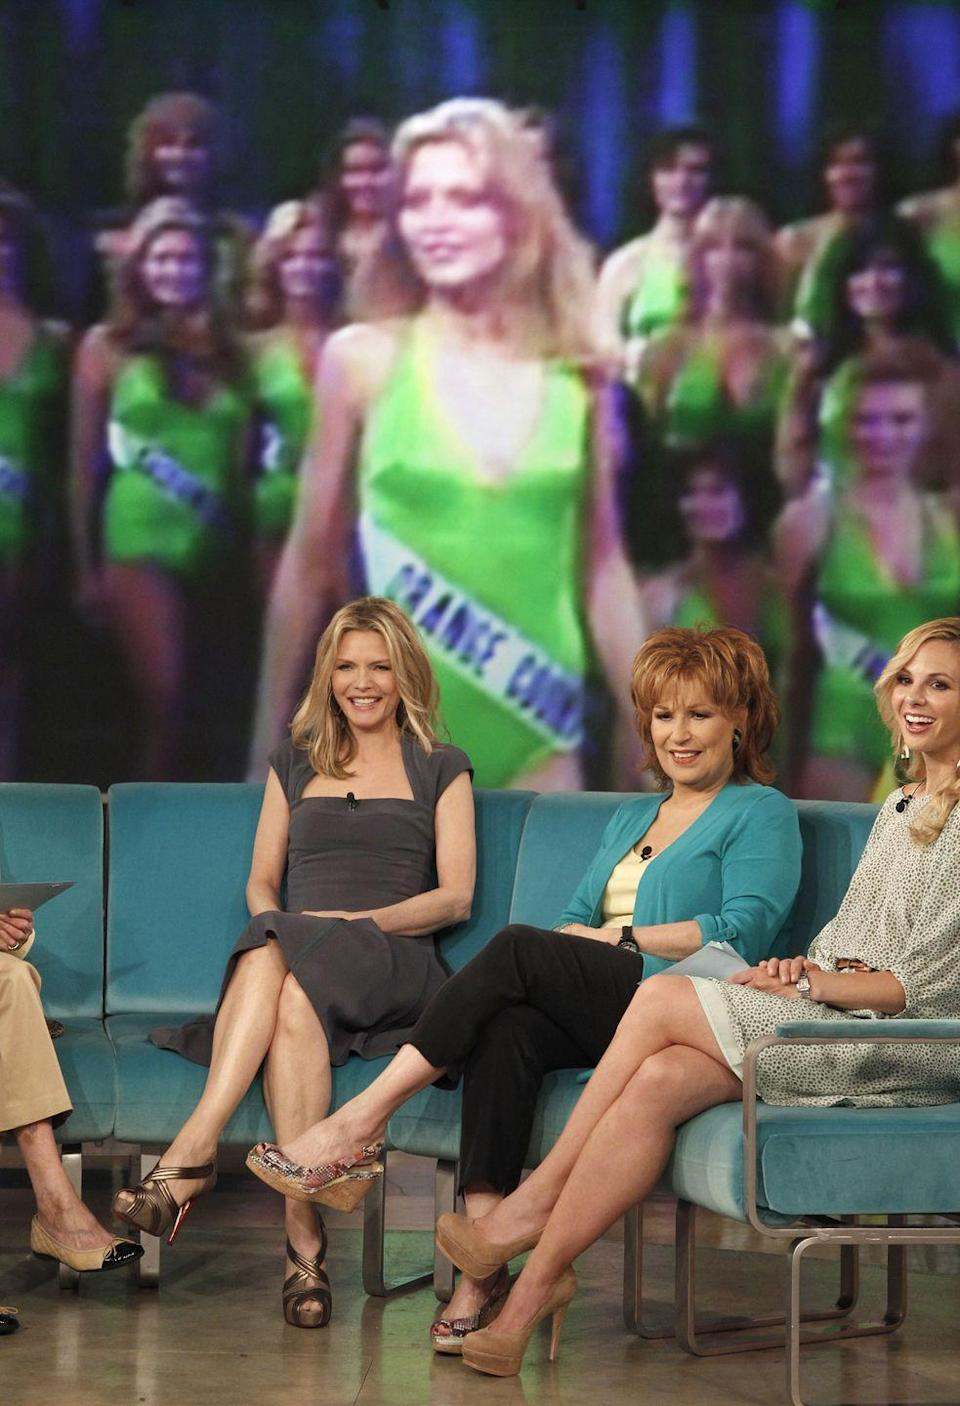 <p>At just 19 years old, Michelle Pfeiffer (pictured on the screen behind the cohosts of <em>The View</em>) was crowned Miss Orange County in 1978. She went on to compete in the Miss California pageant.</p>